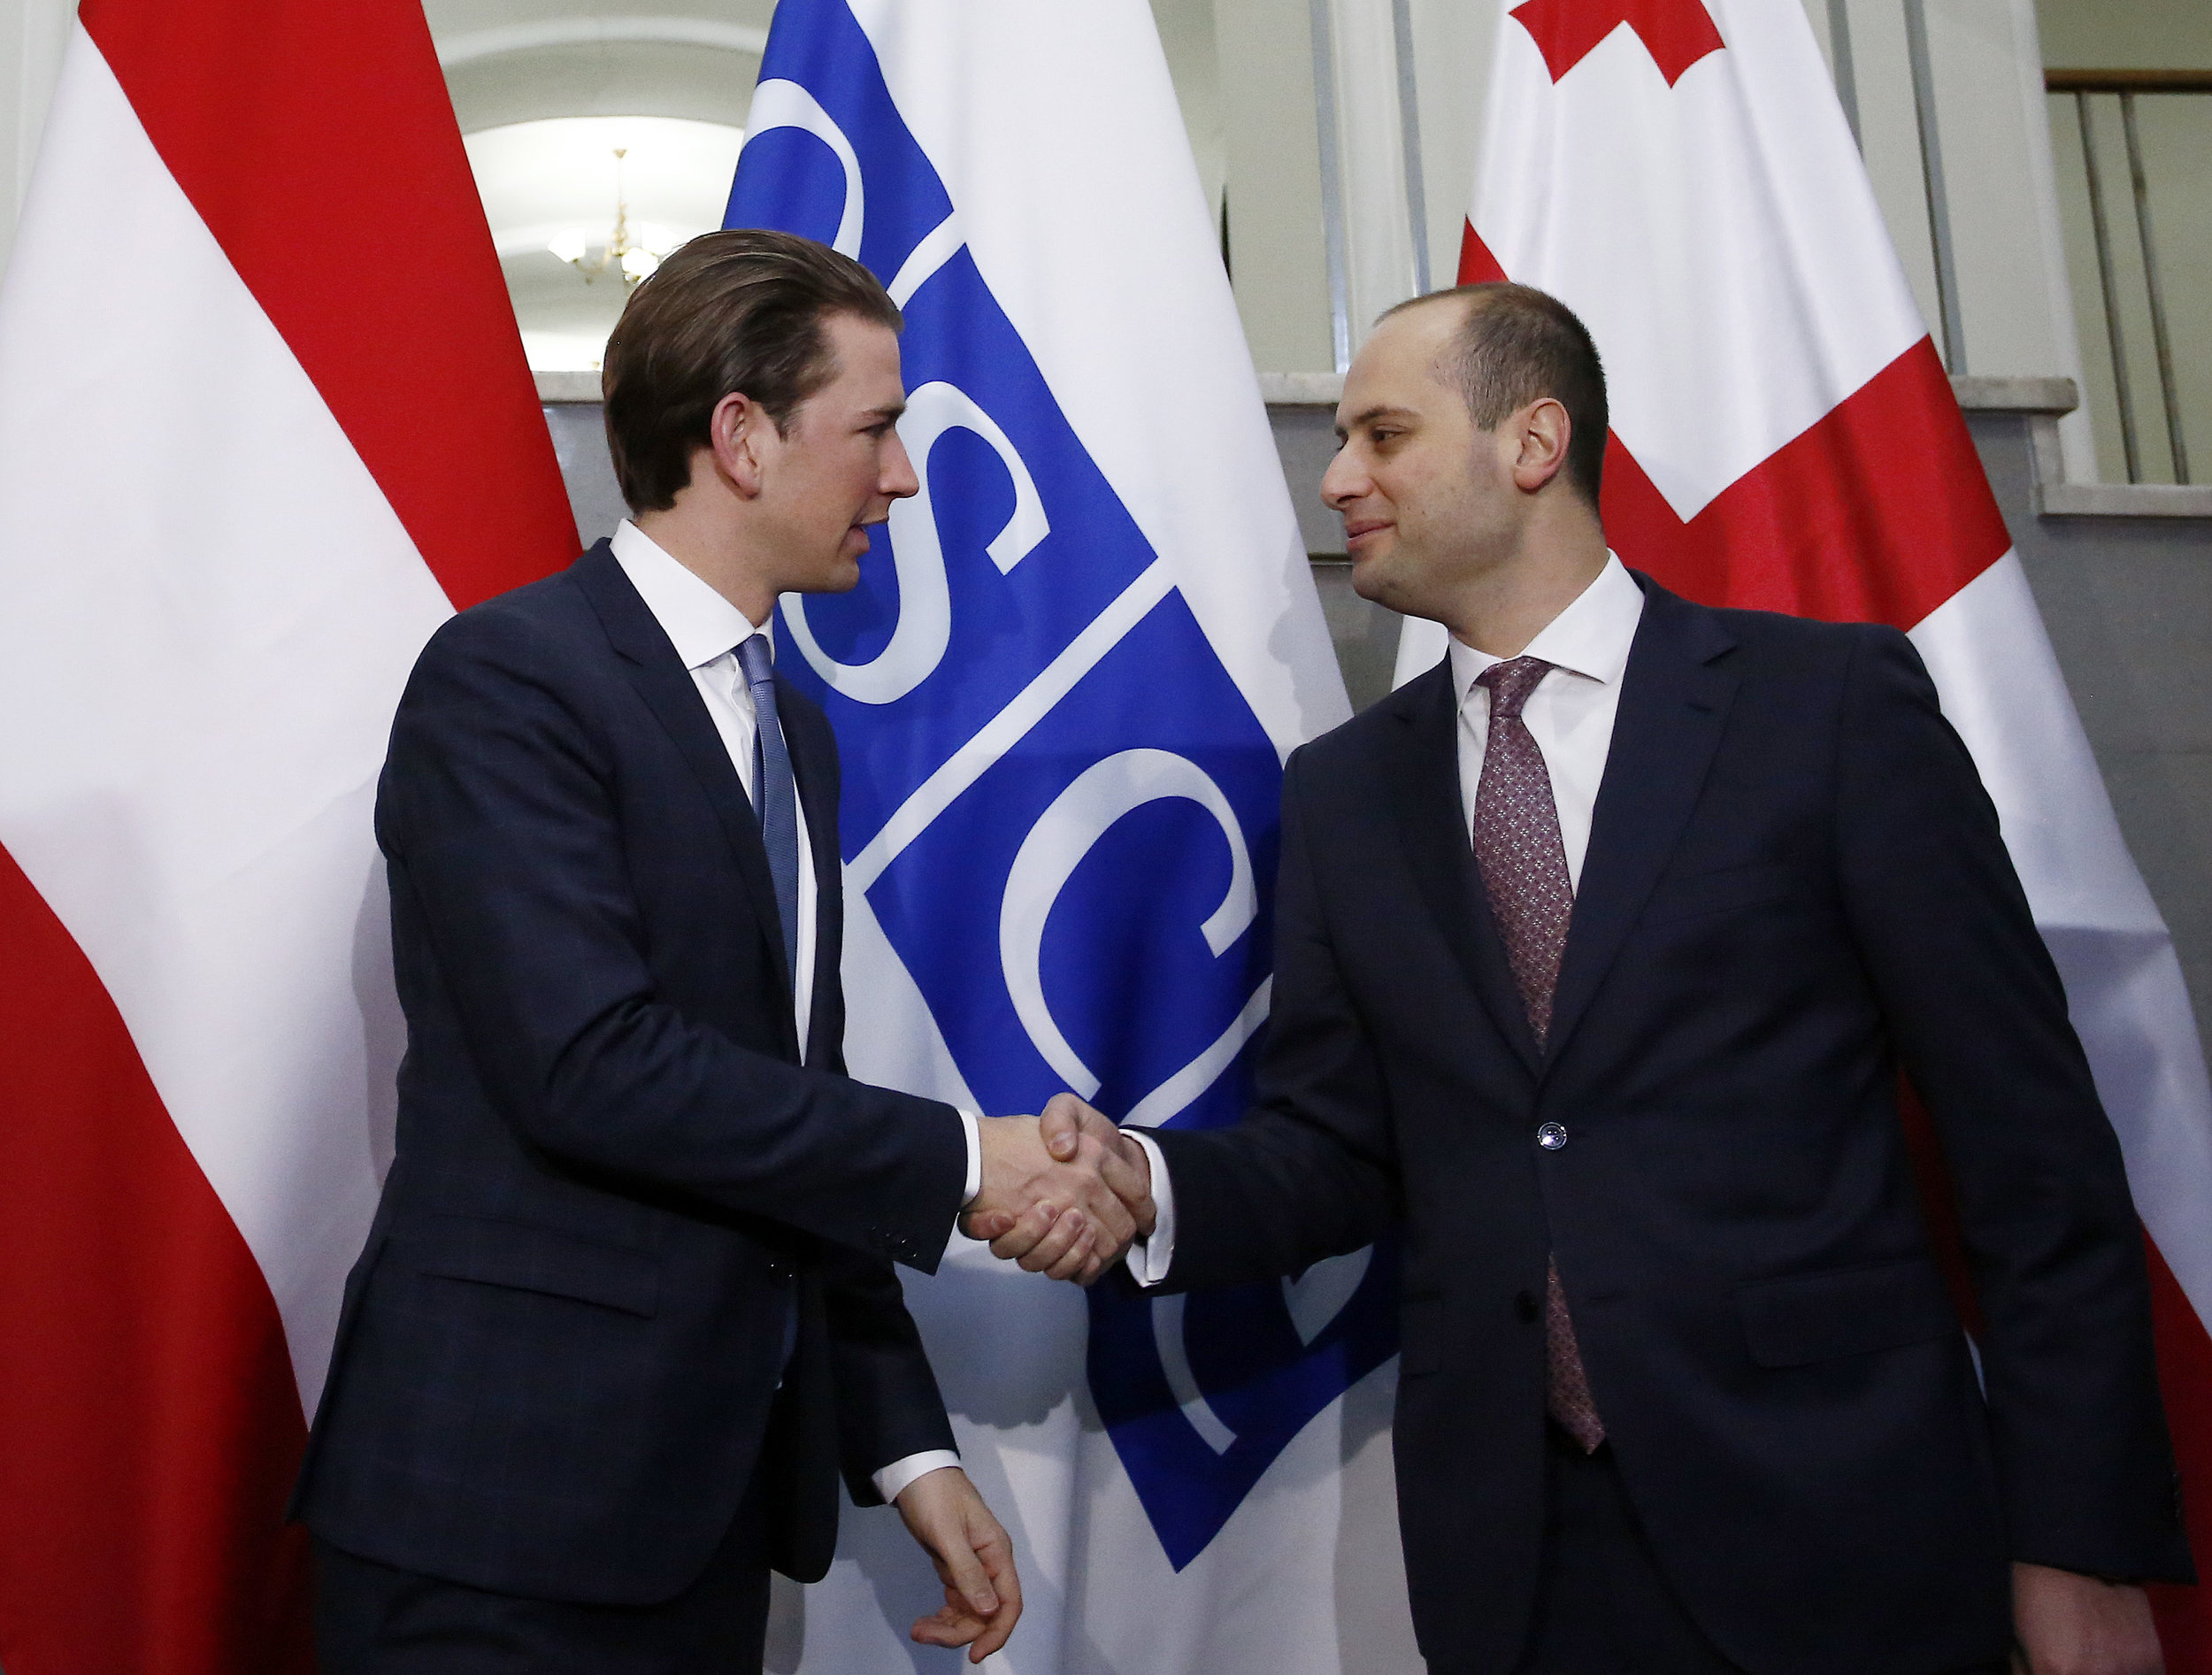 Georgian Foreign Minister Mikheil Janelidze meeting Austrian Chancellor Sebastian Kurz in 2017. (Wikimedia Commons)